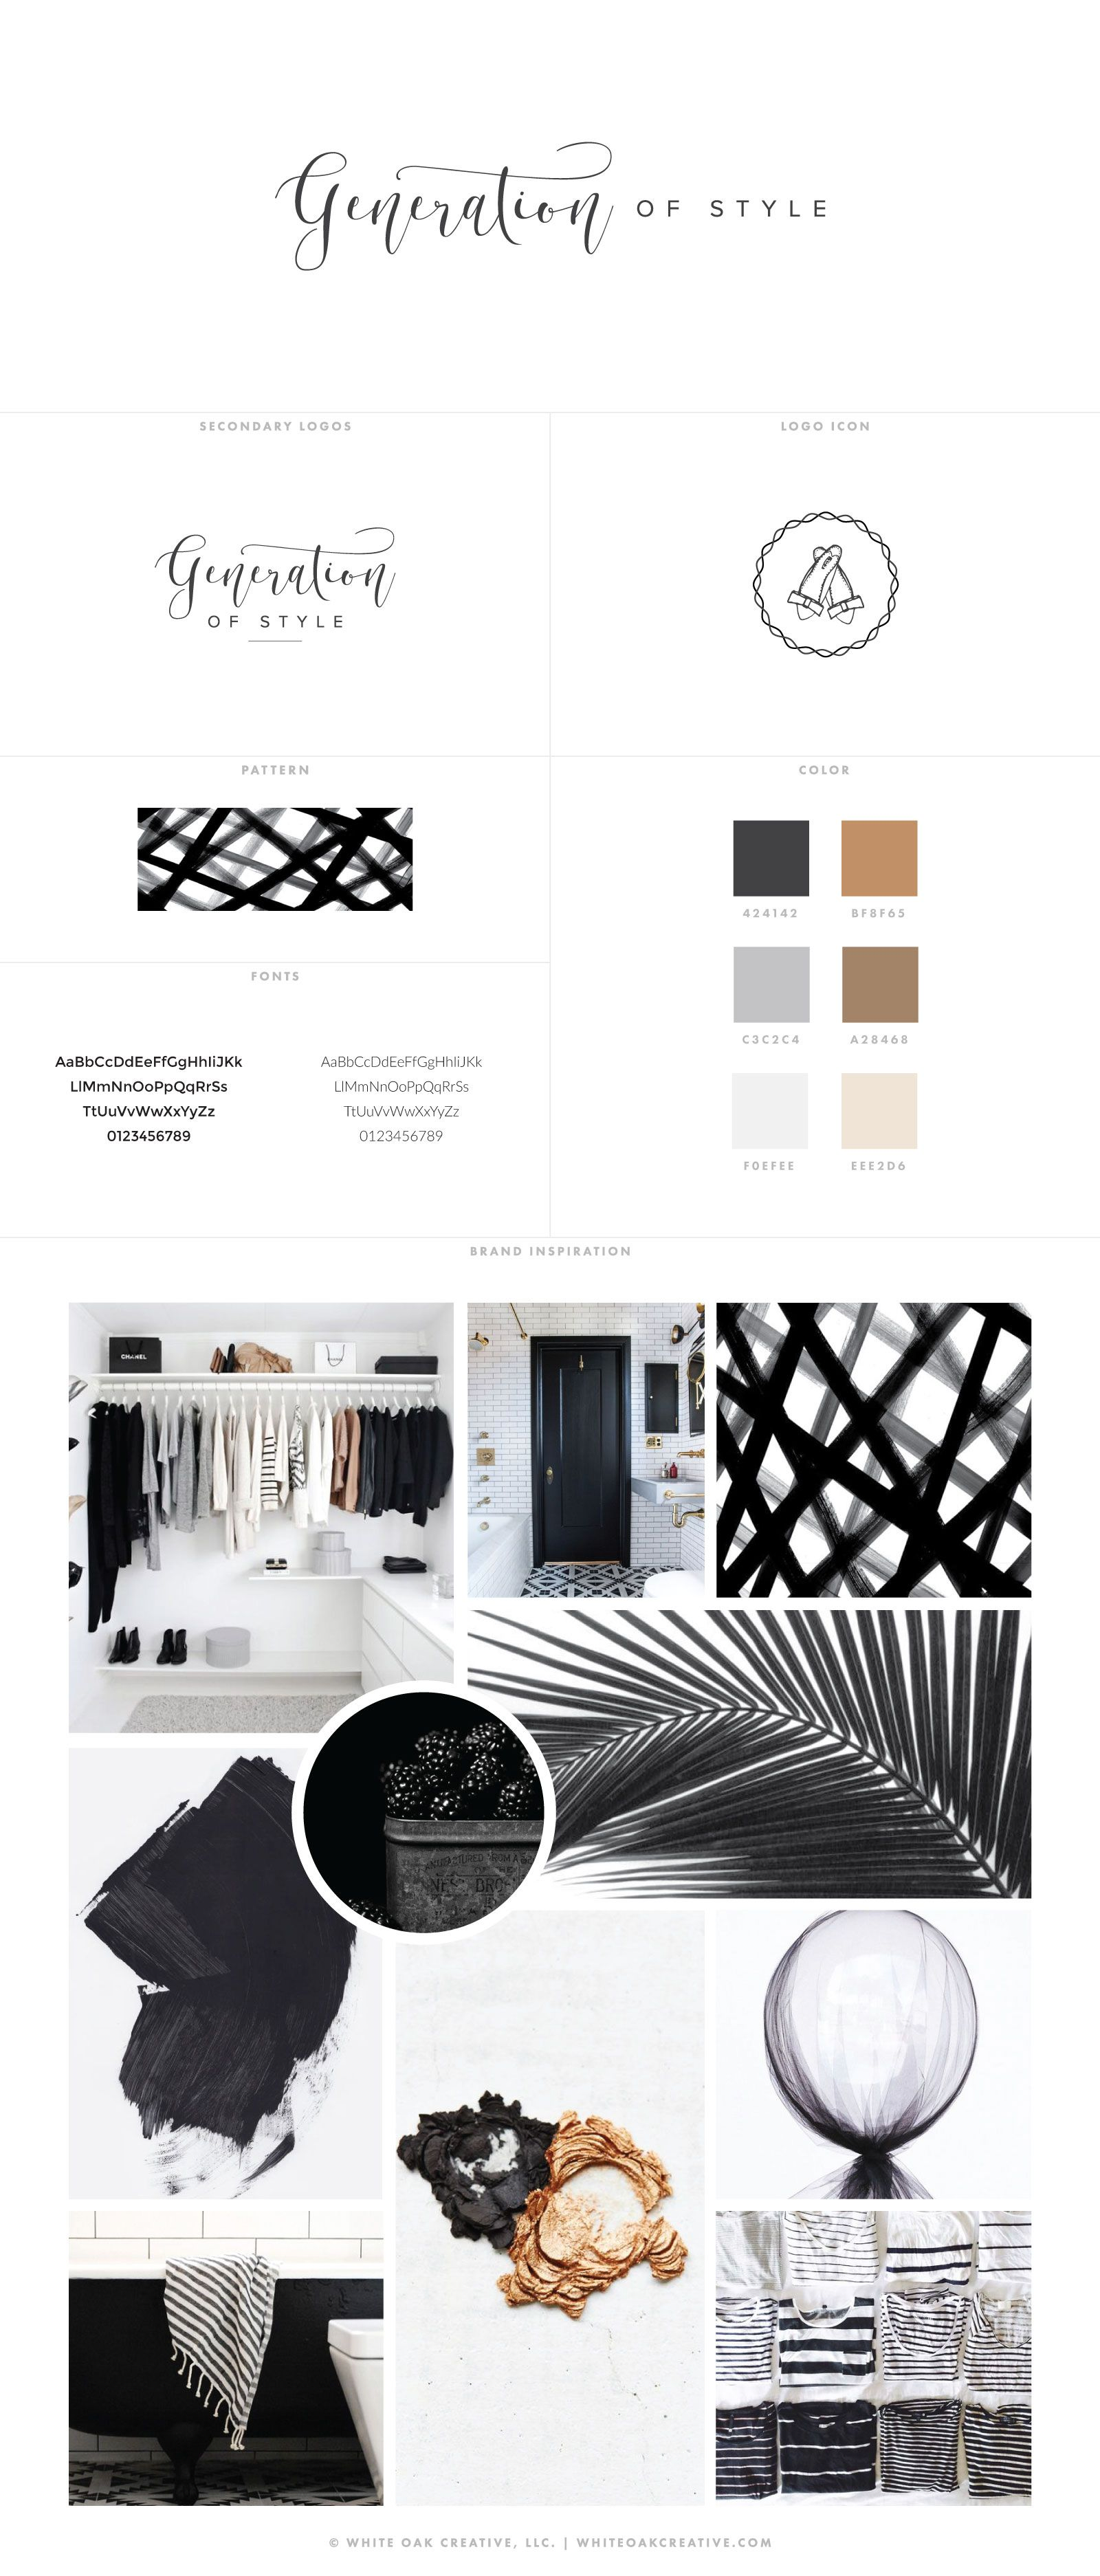 Graphic design fashion blog 2